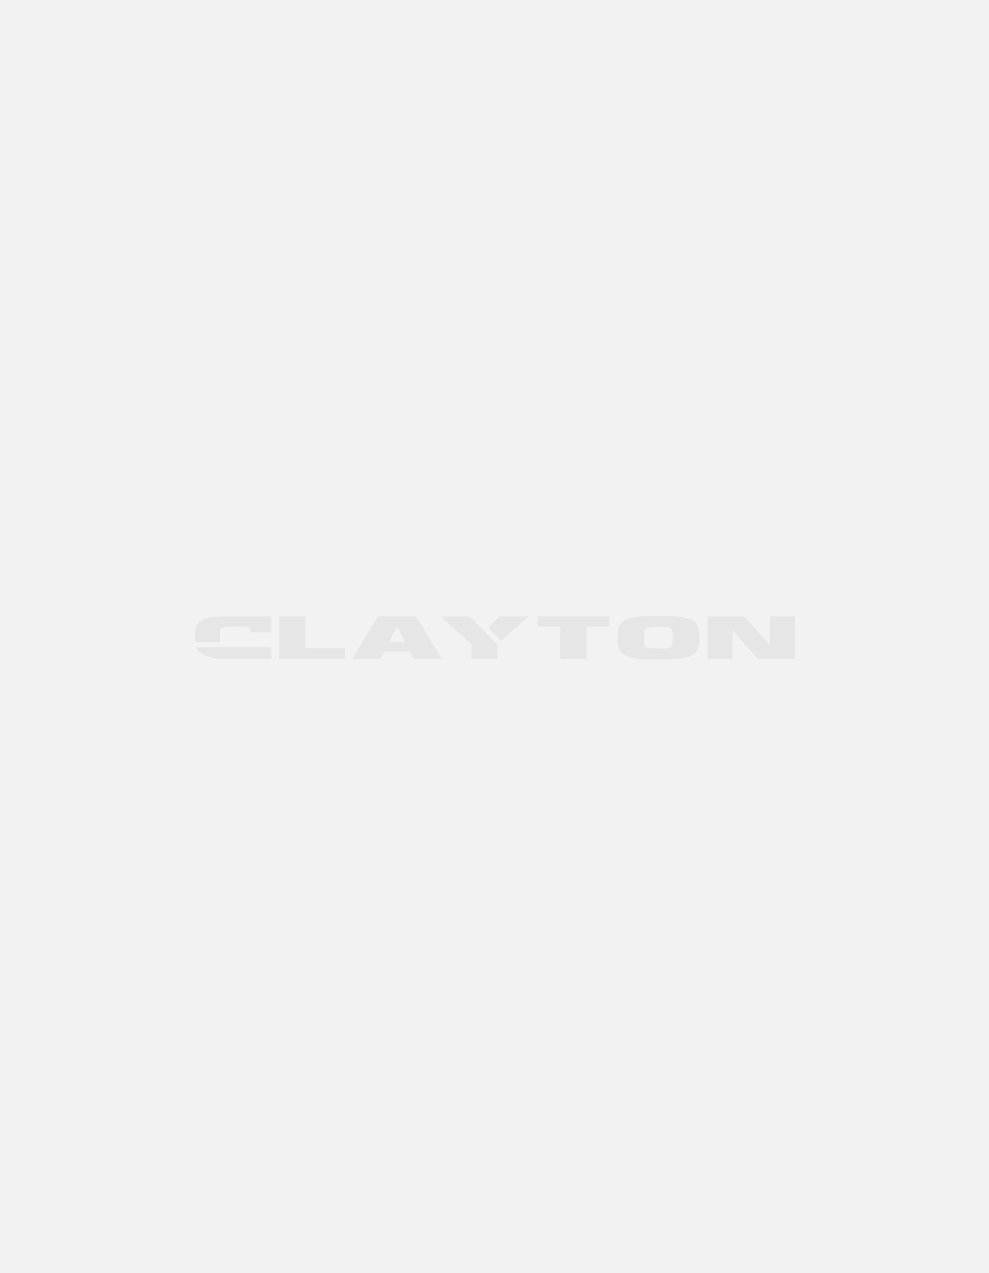 Men's shirt with stand up collar and polk dots print